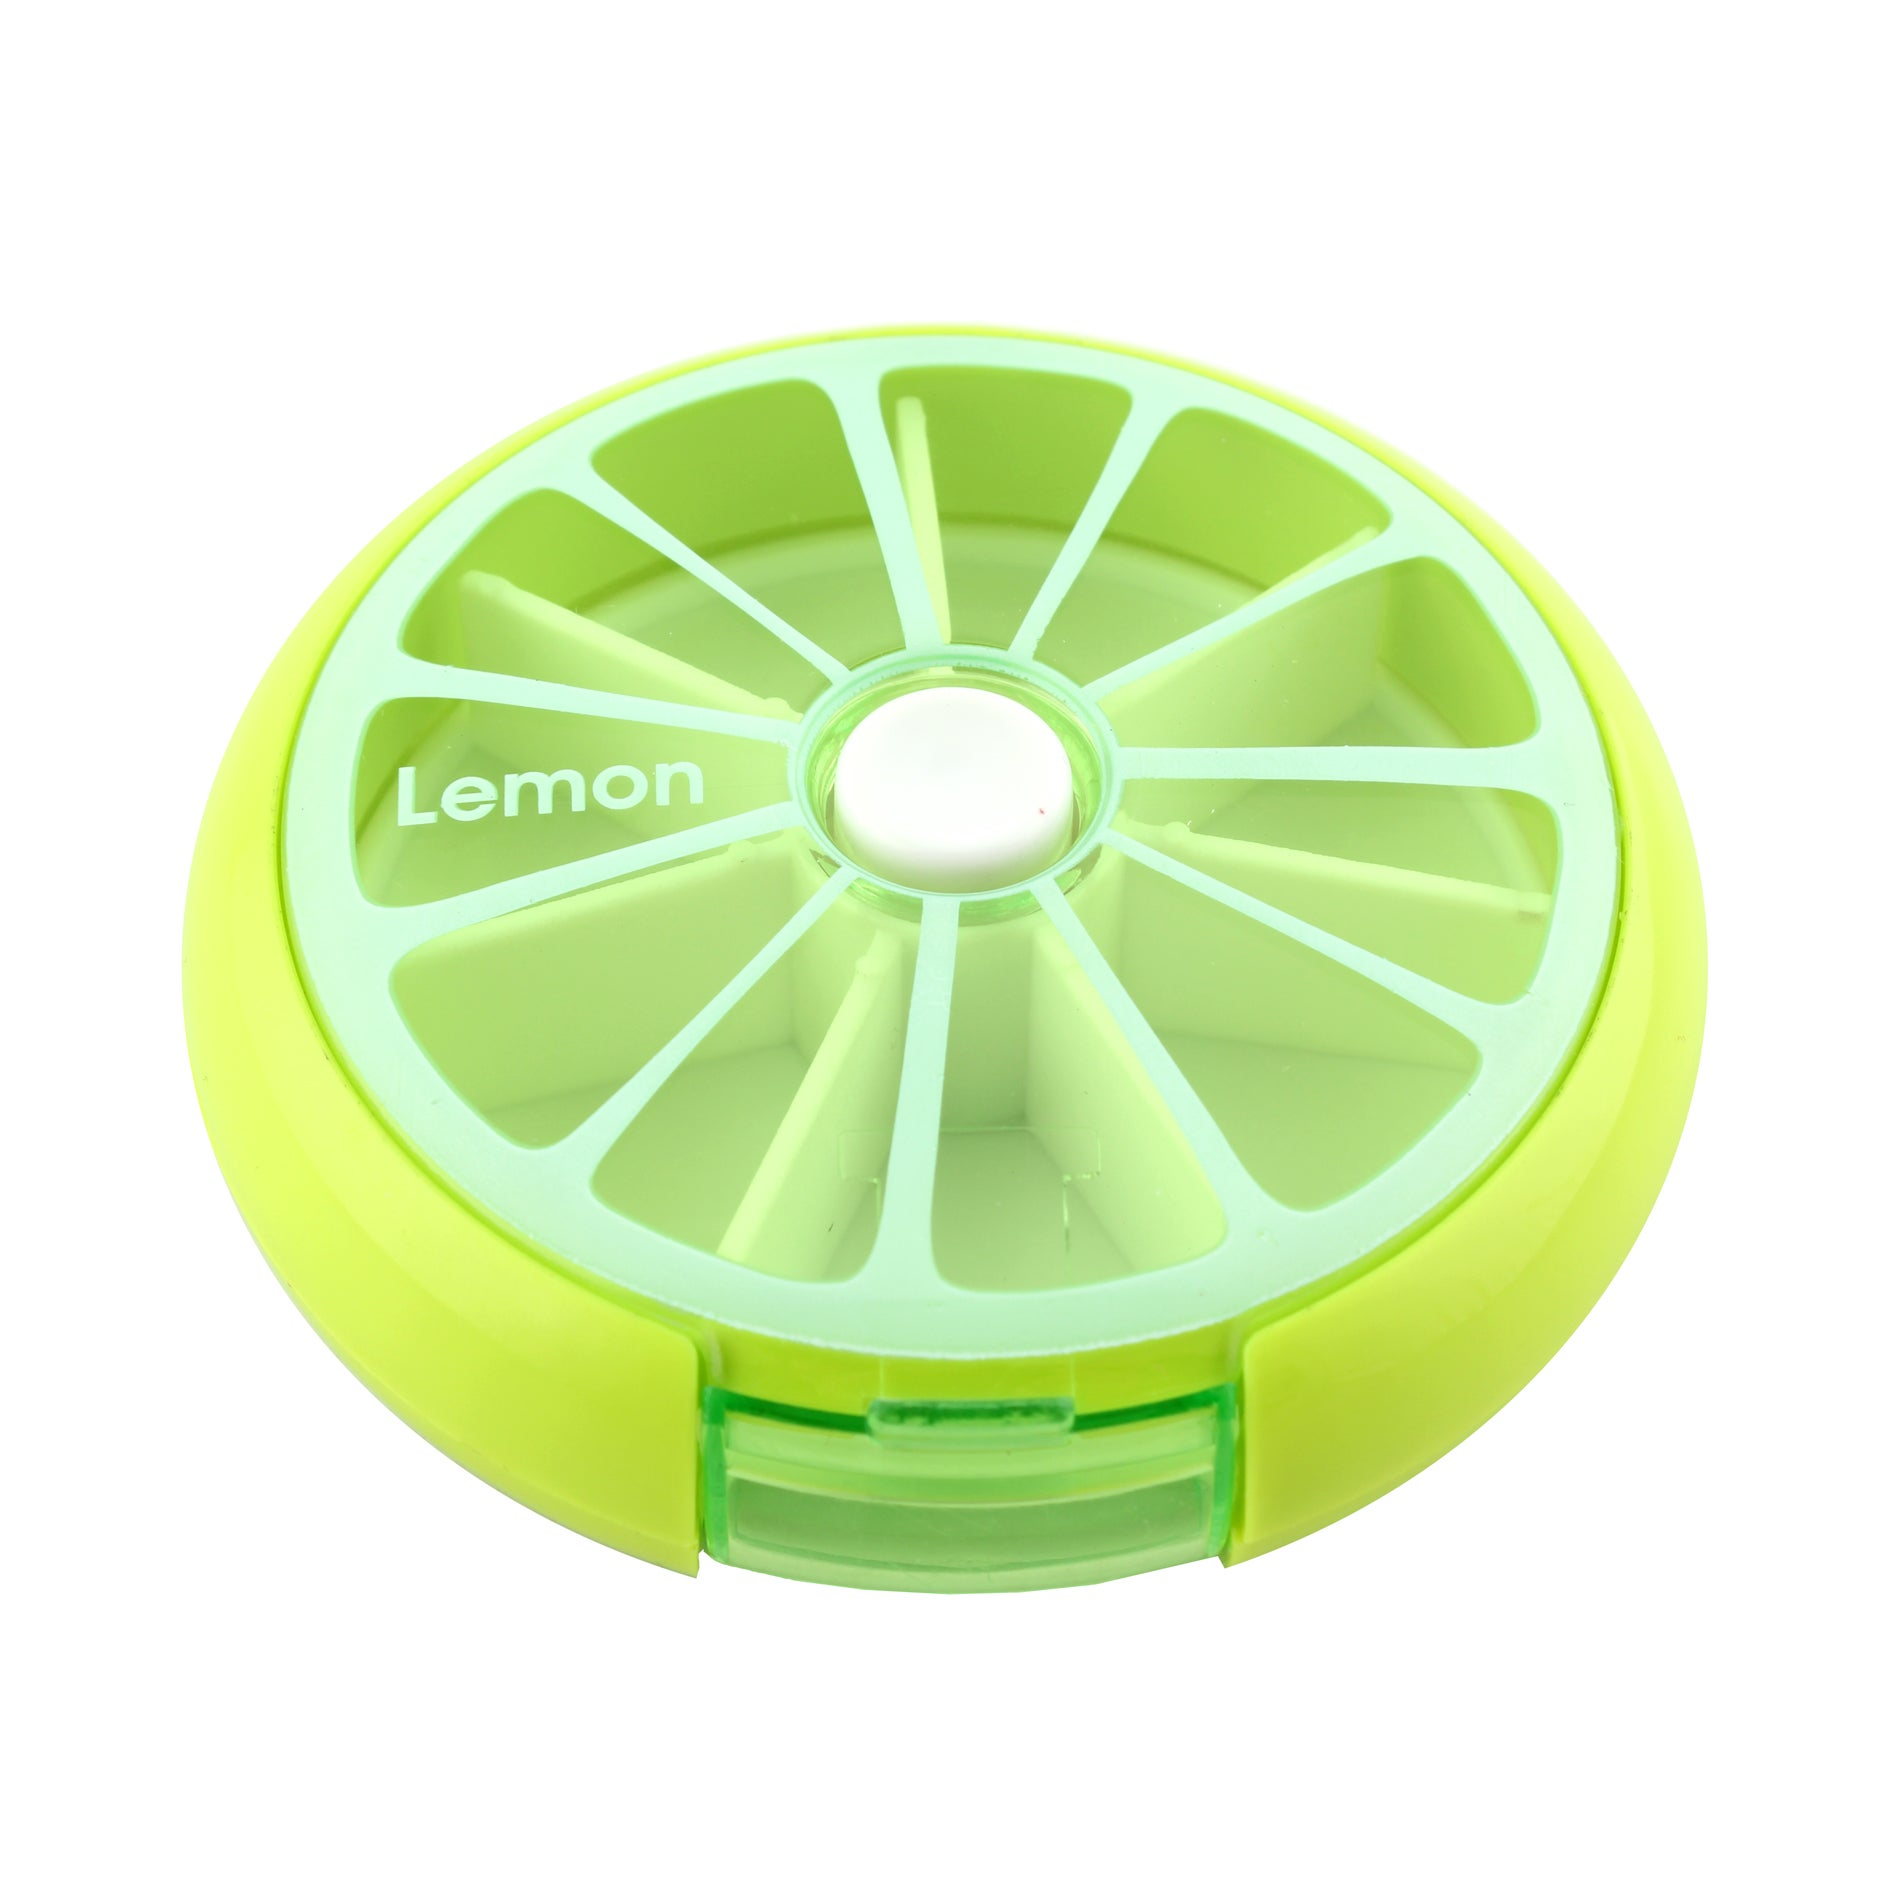 DAILY 7 DAY ROUND PILL BOX STORAGE DISPENSER ORGANISERS TABLETS CASE GREEN